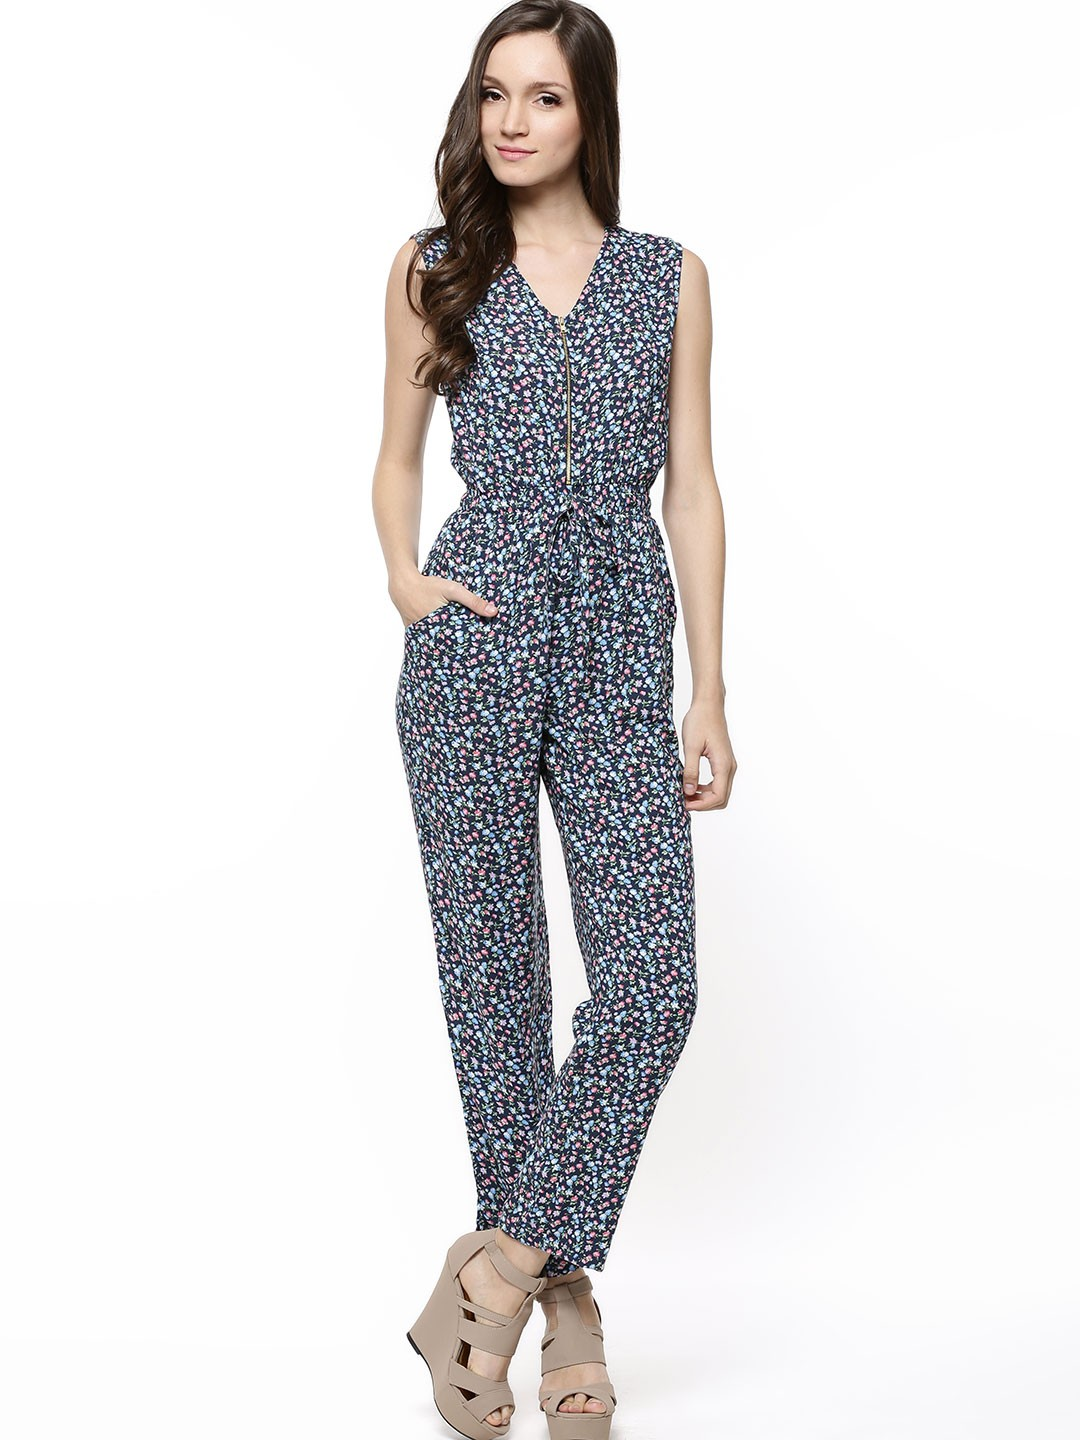 Buy FABALLEY Printed Jumpsuit For Women - Womenu0026#39;s Blue Jumpsuits Online In India